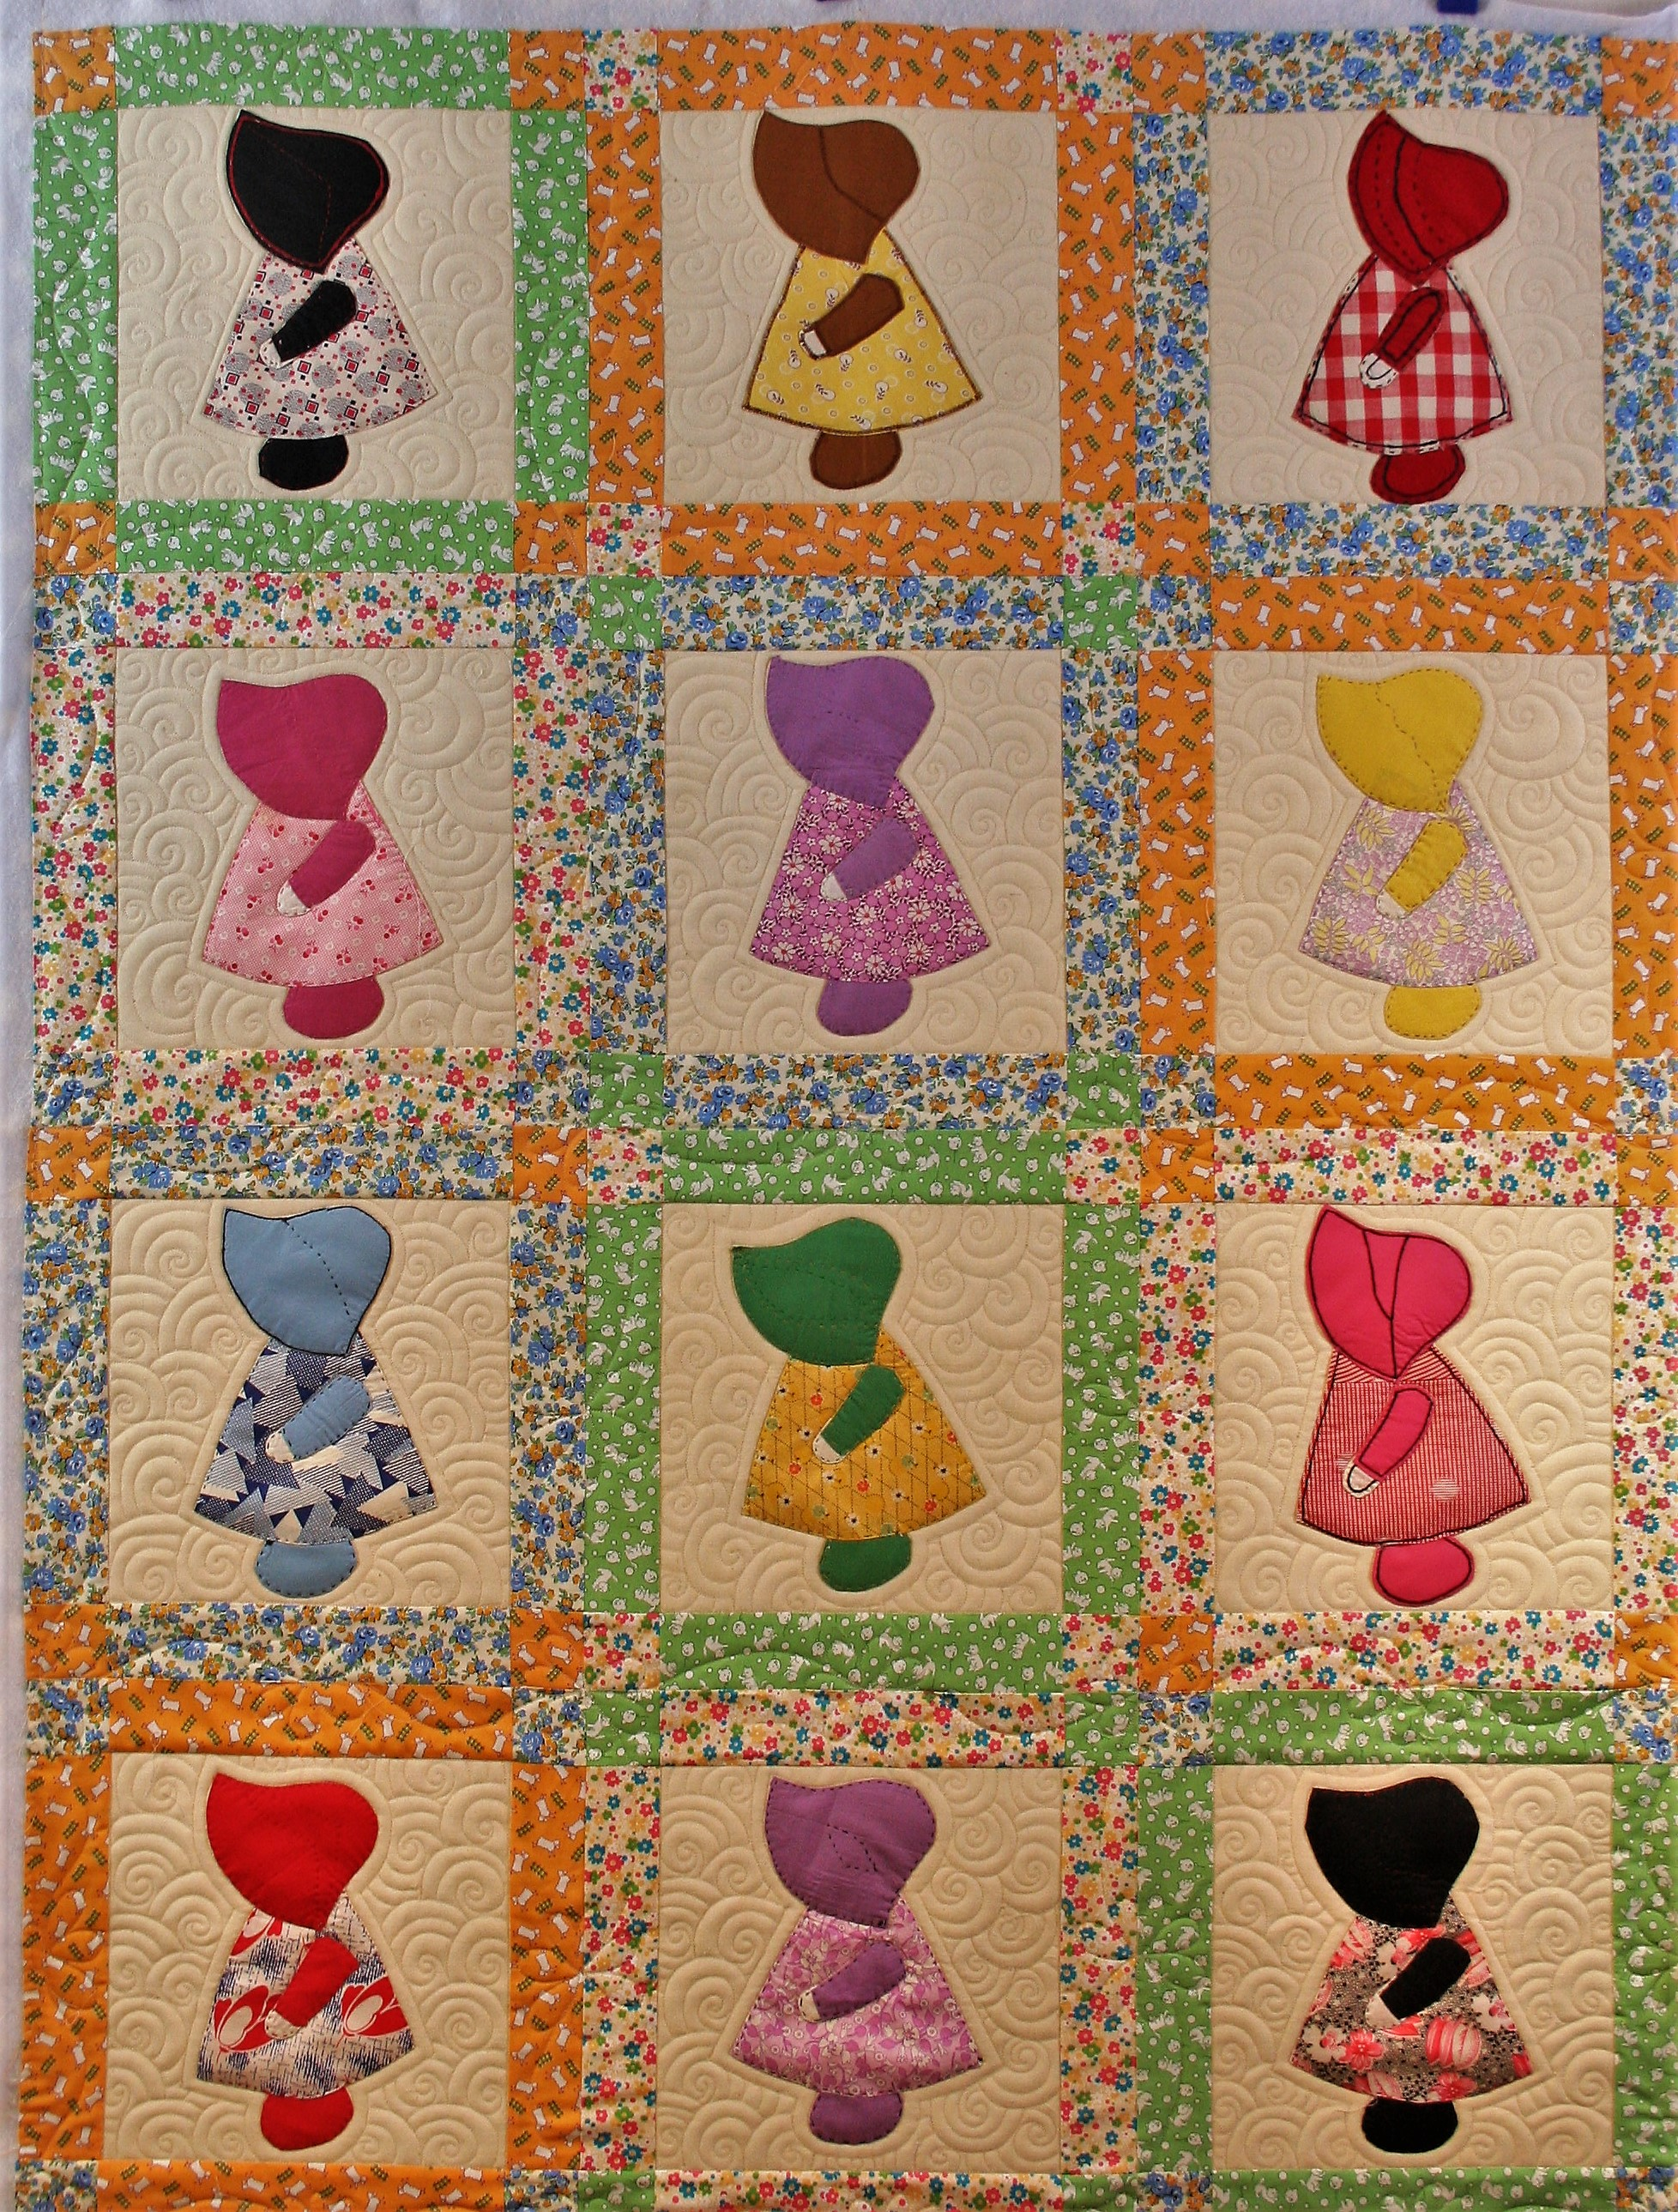 Sunbonnet Sue and Swirls (front)